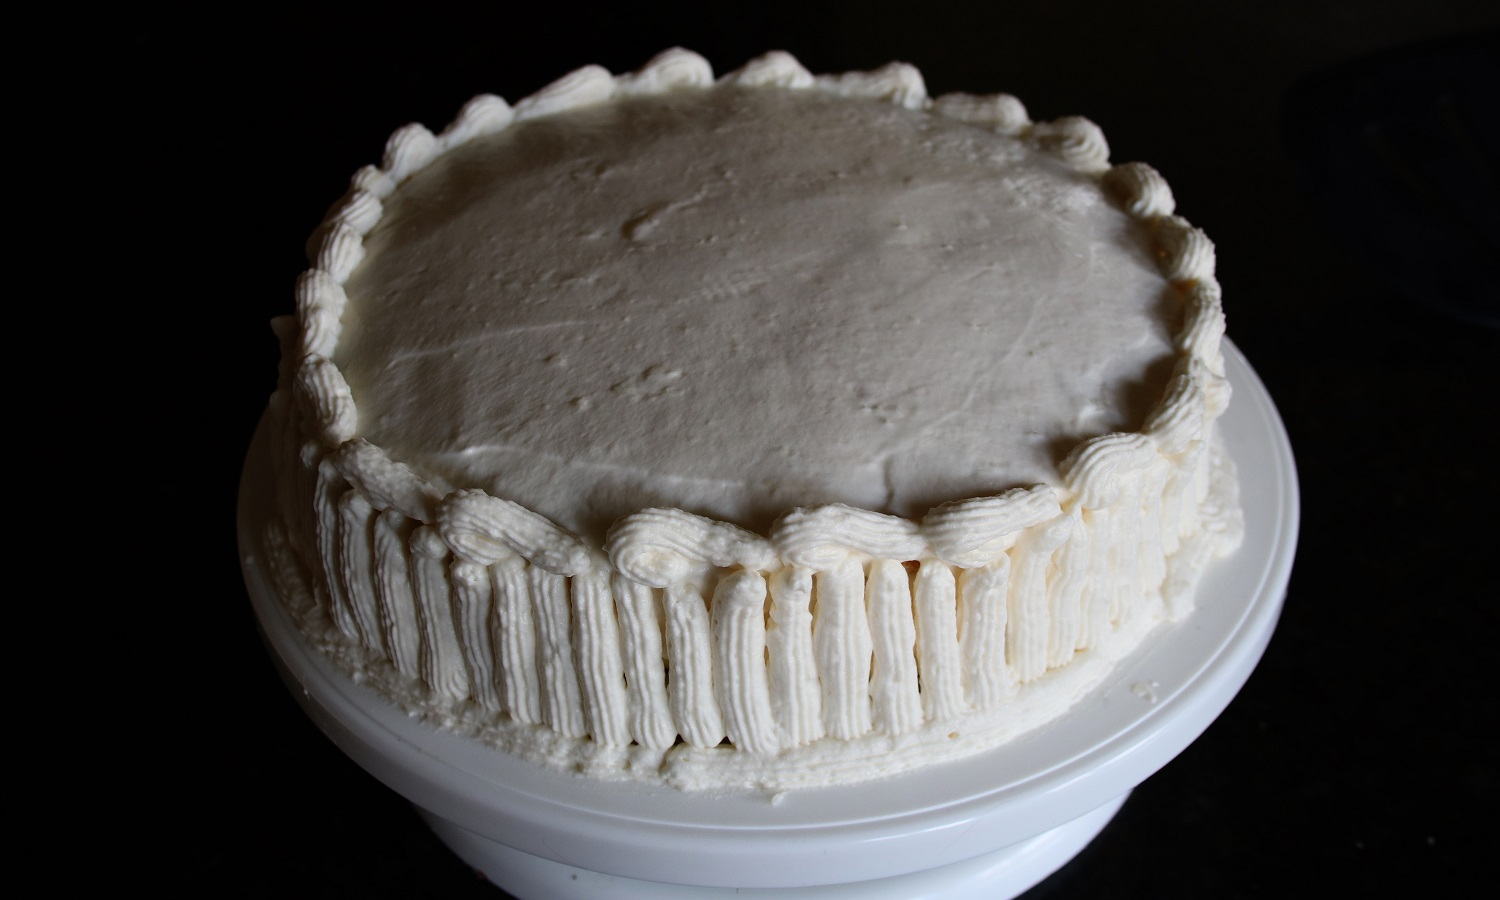 Stabilized Whipped Cream Frosting Keto Sugar Free Gluten Free Keto Meals And Recipes